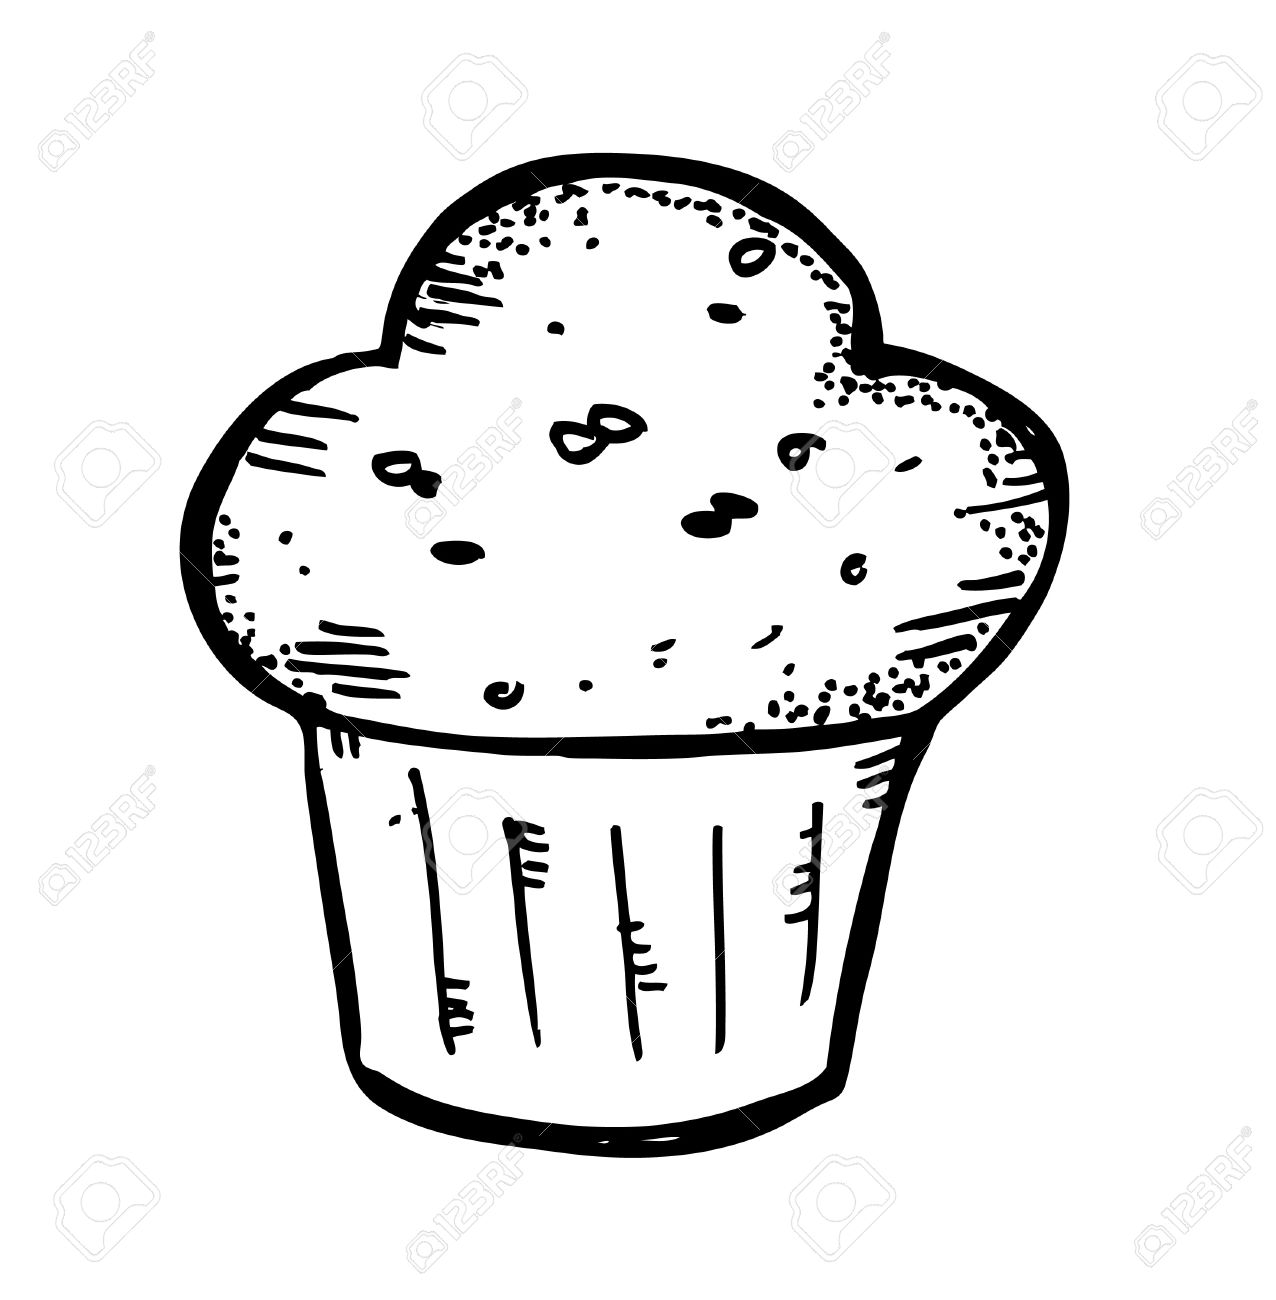 Muffins for mom clipart black and white svg royalty free Muffins Clipart Group with 59+ items svg royalty free